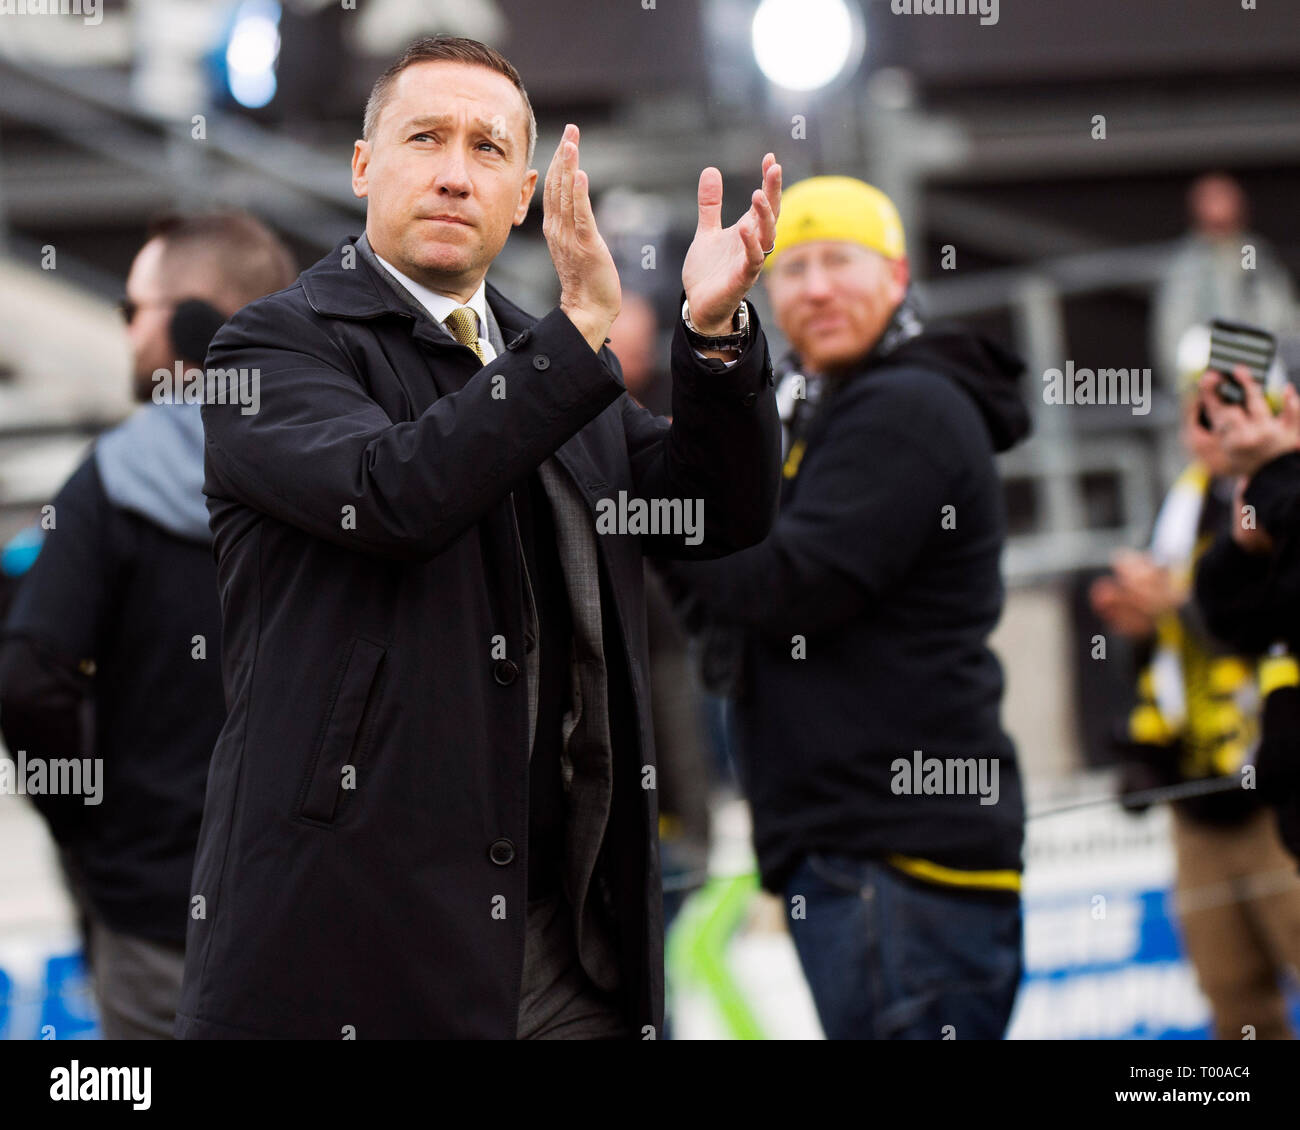 March 16, 2019: Columbus Crew SC head coach Caleb Porter before facing FC Dallas in their game in Columbus, Ohio, USA. Brent Clark/Alamy Live News - Stock Image